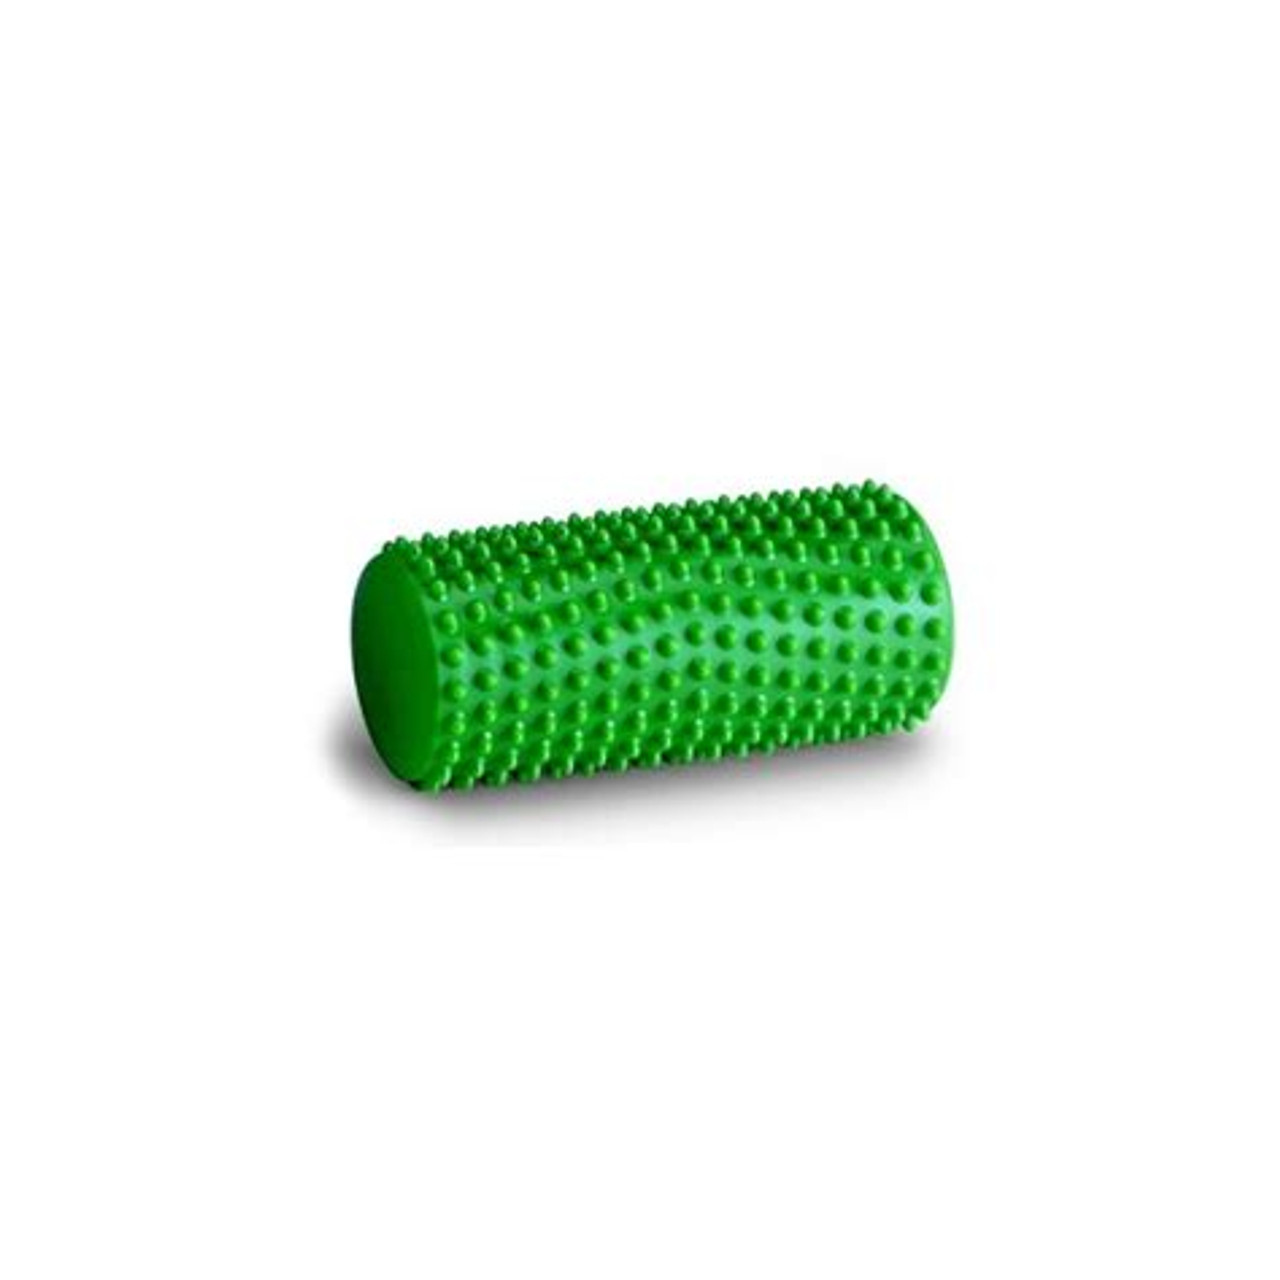 Activ Roll for Sensory and Tactile input